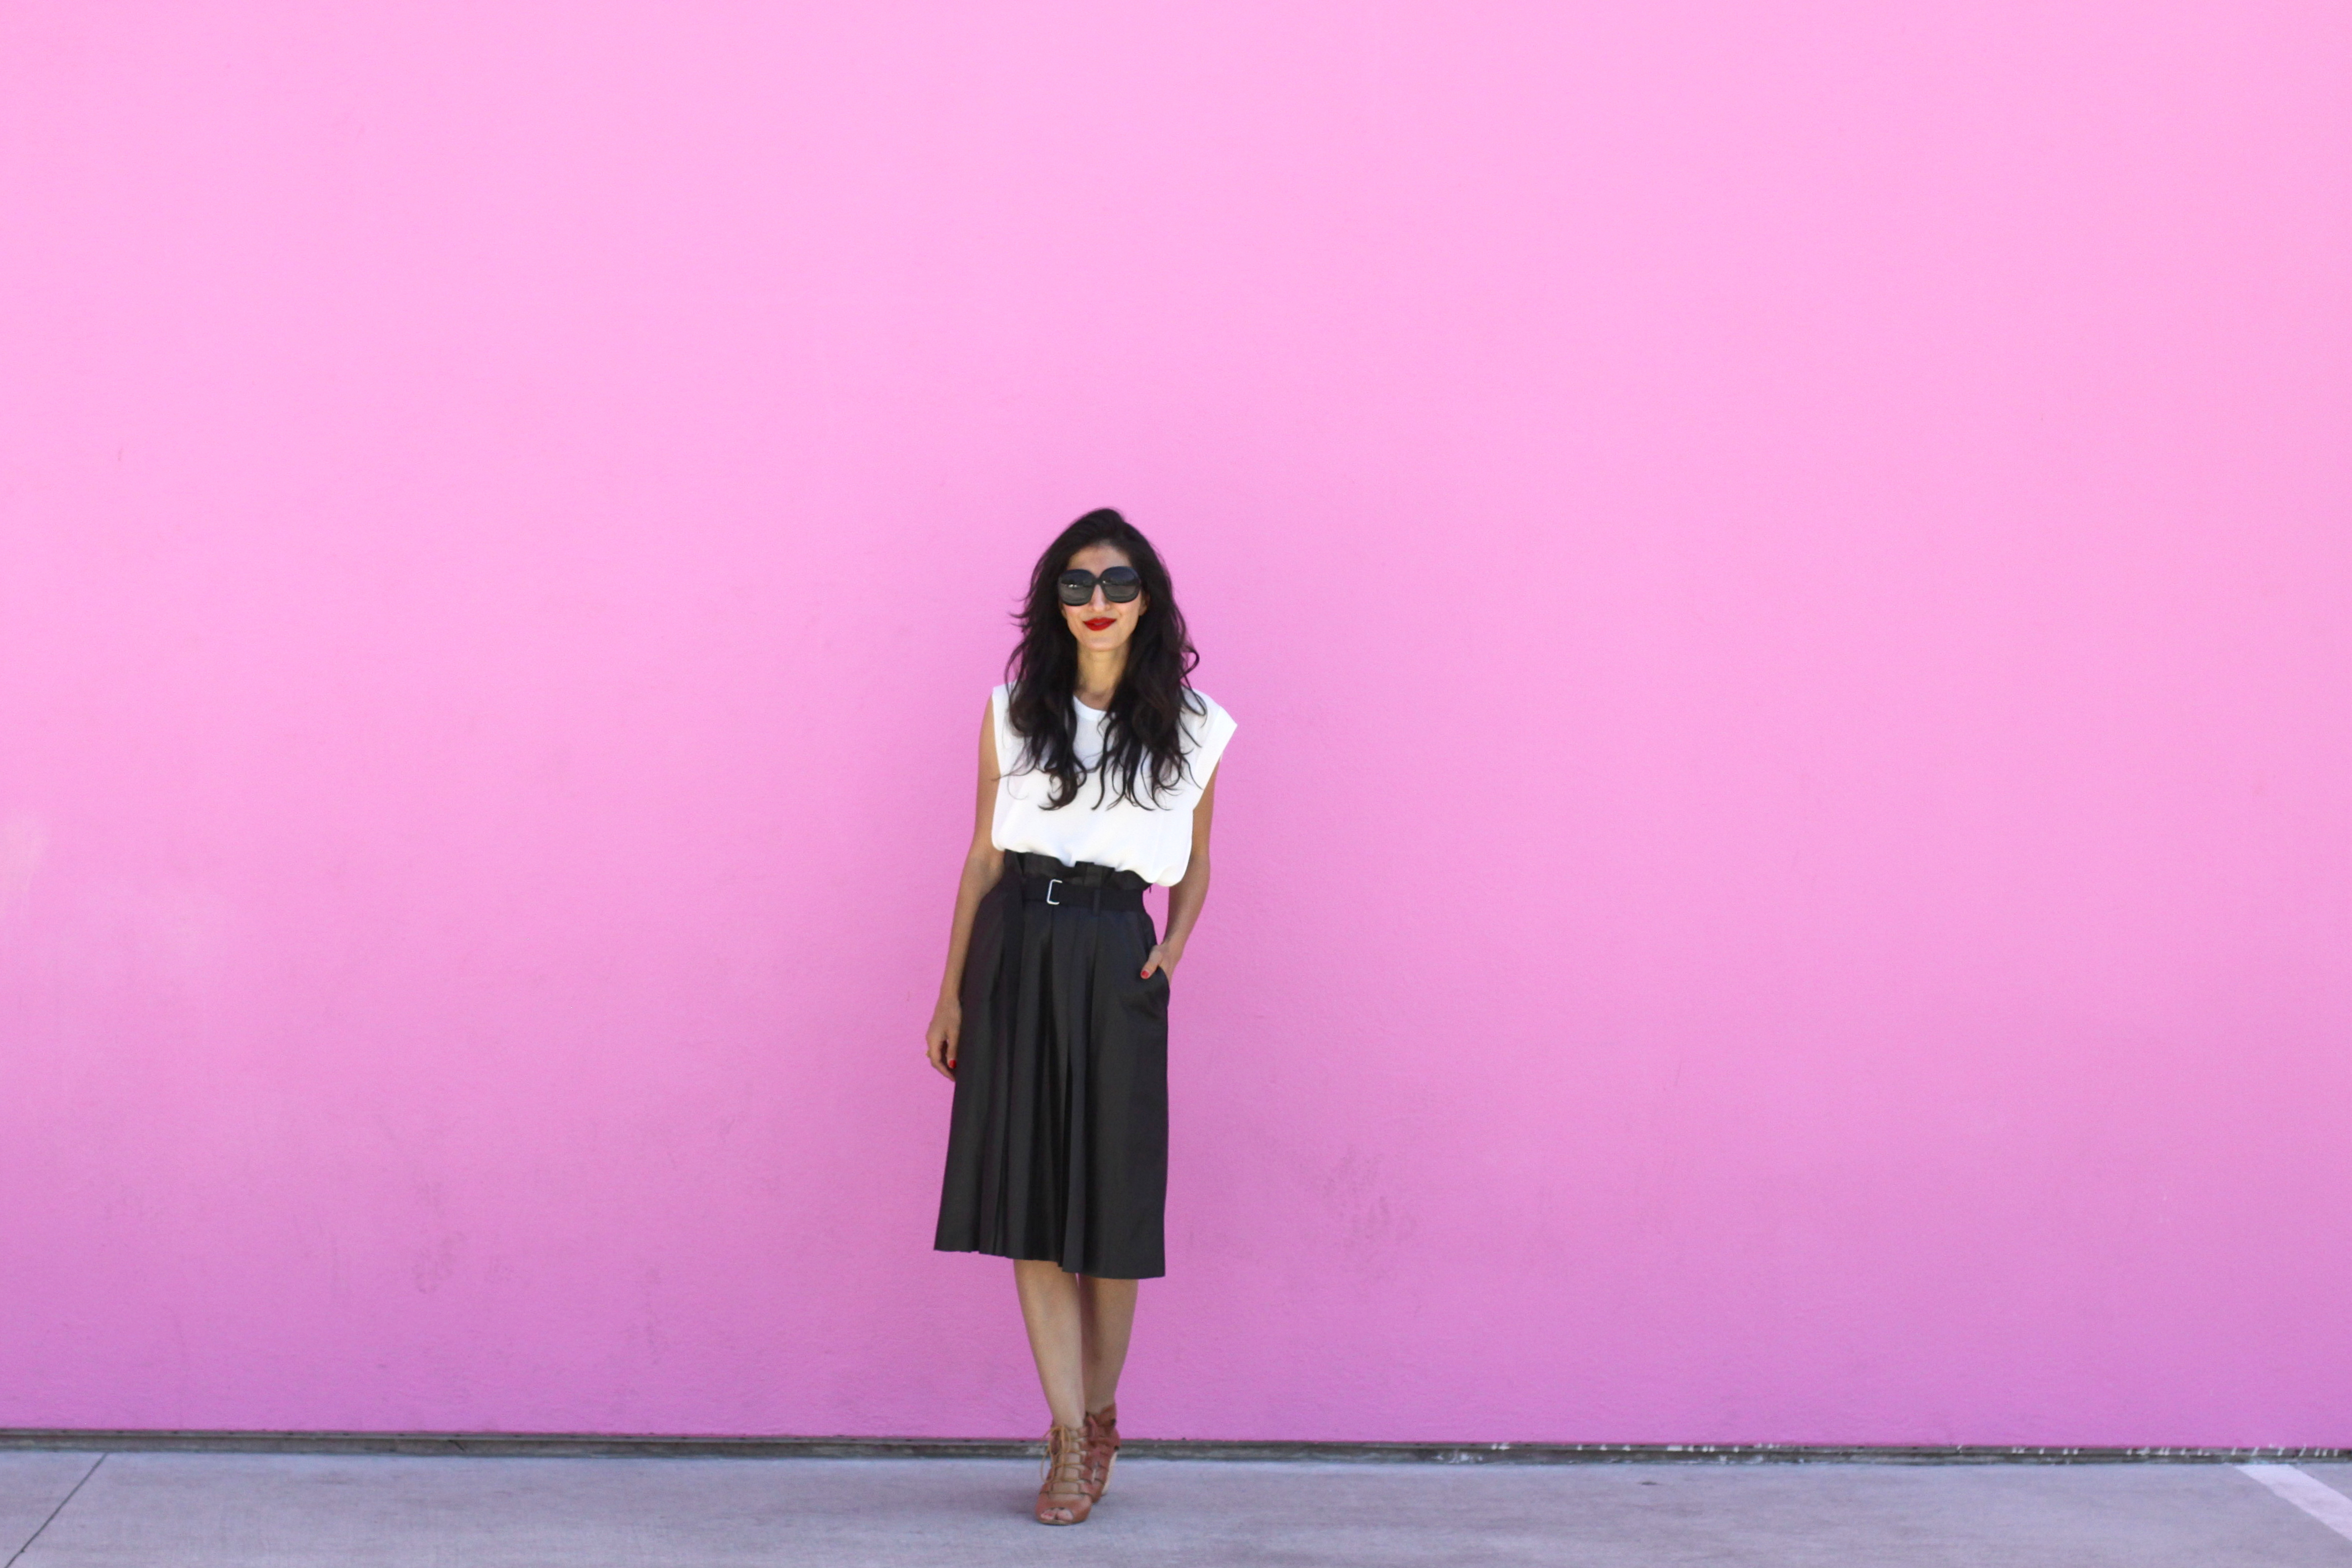 Location: THAT pink wall! Paul Smith on Melrose :)